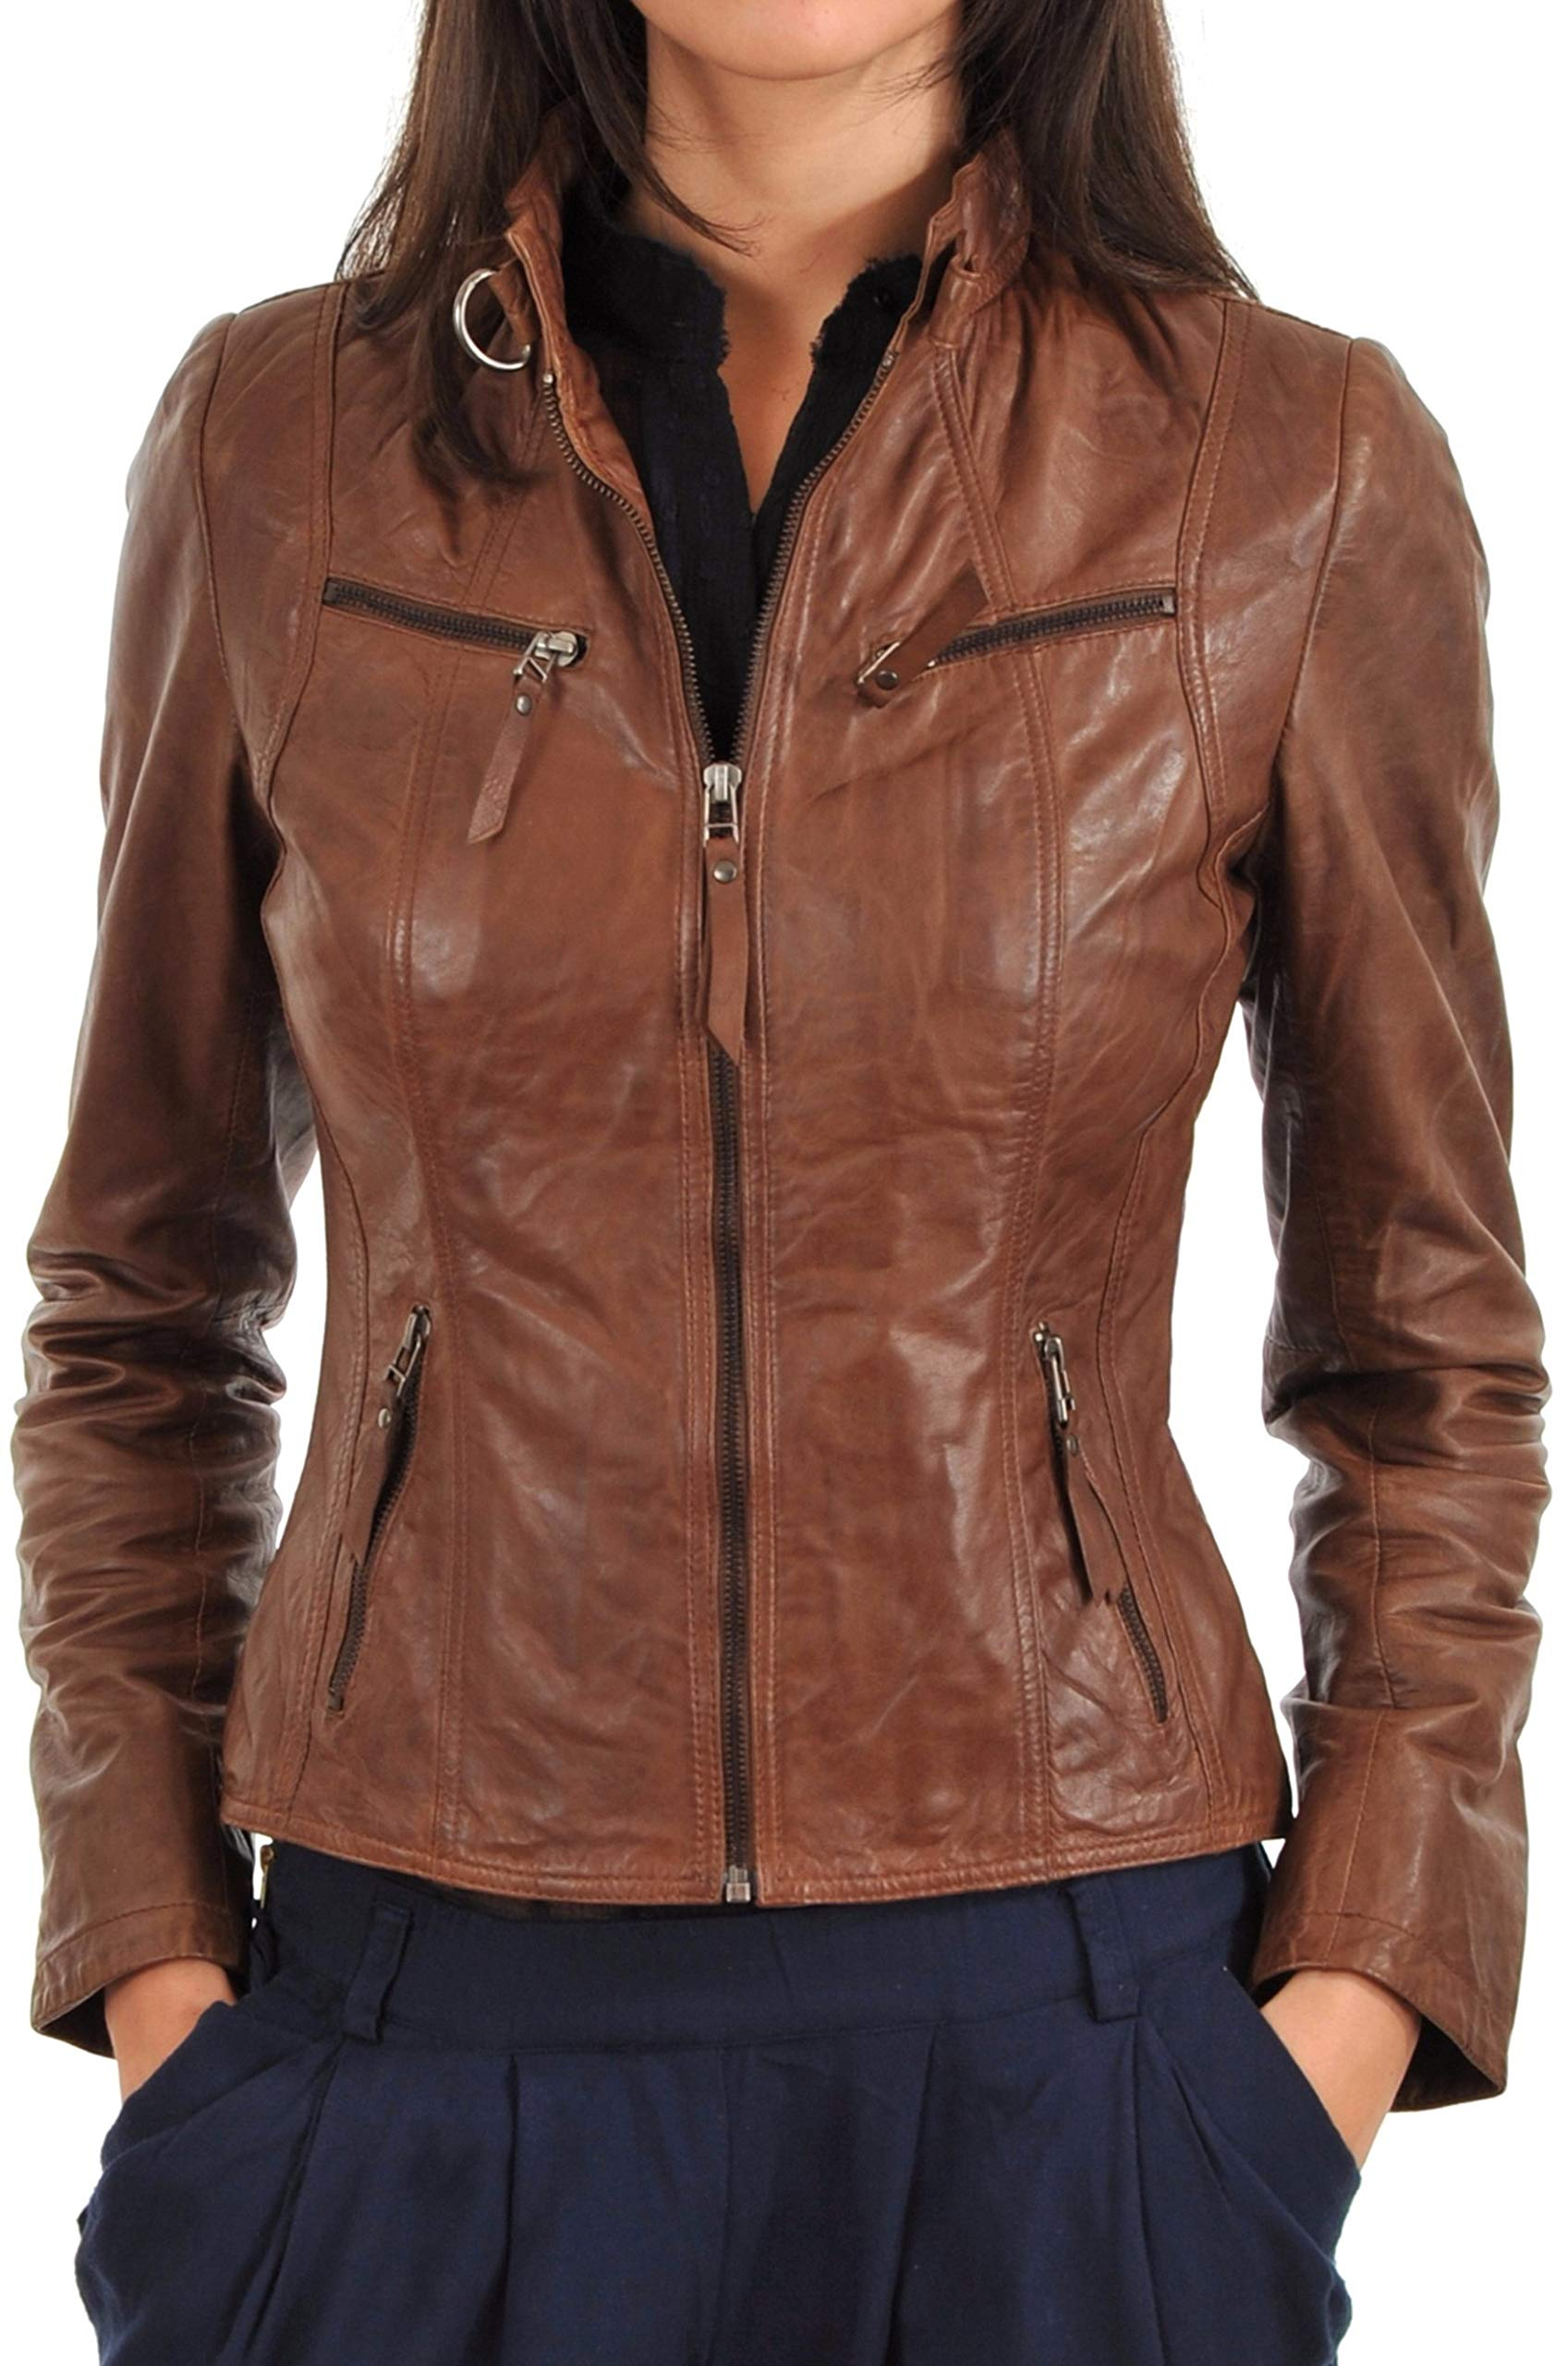 01b4b78565e4 Womens Leather Jacket Bomber Motorcycle Biker Real Lambskin Leather Jacket  for Womens